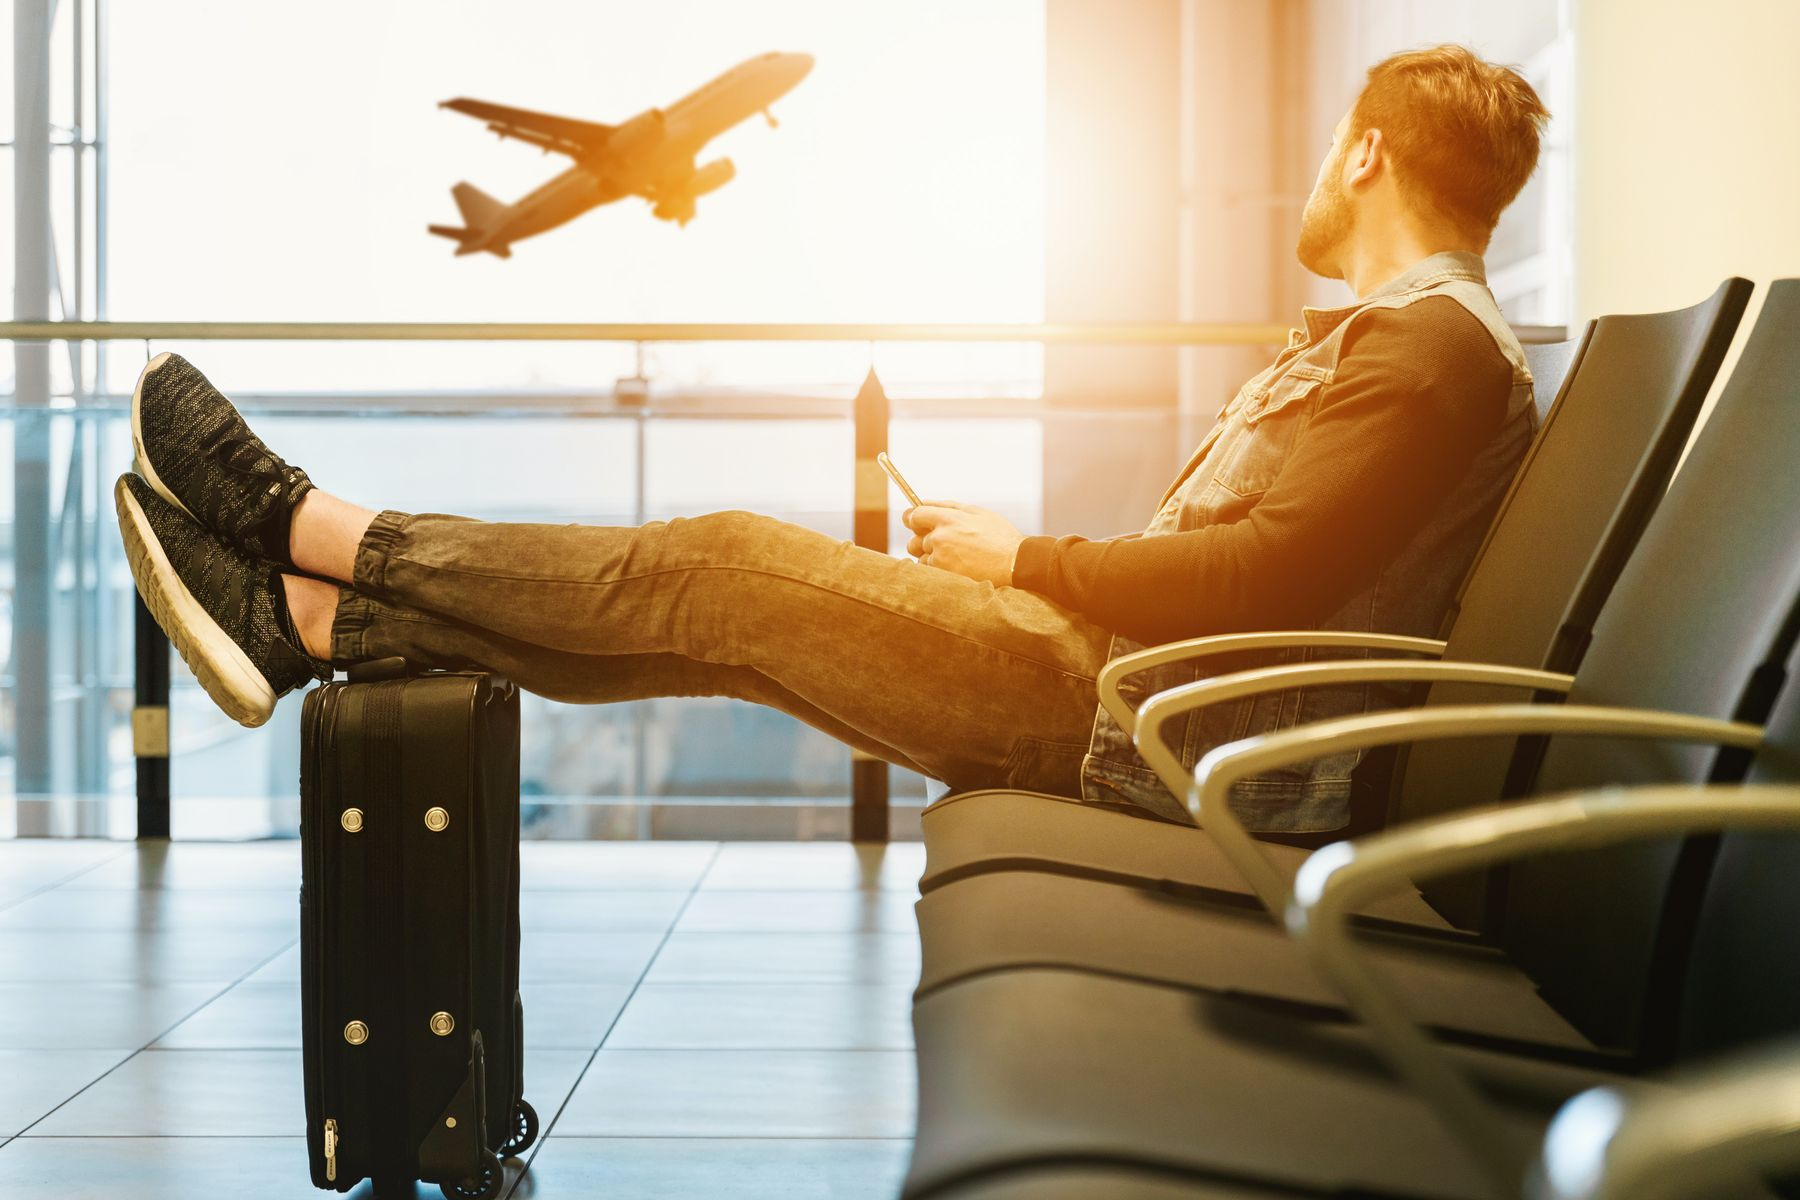 Waiting at the airport. Flight delays and cancellations are par the course lately. Find out what your rights are with Skyscanner.